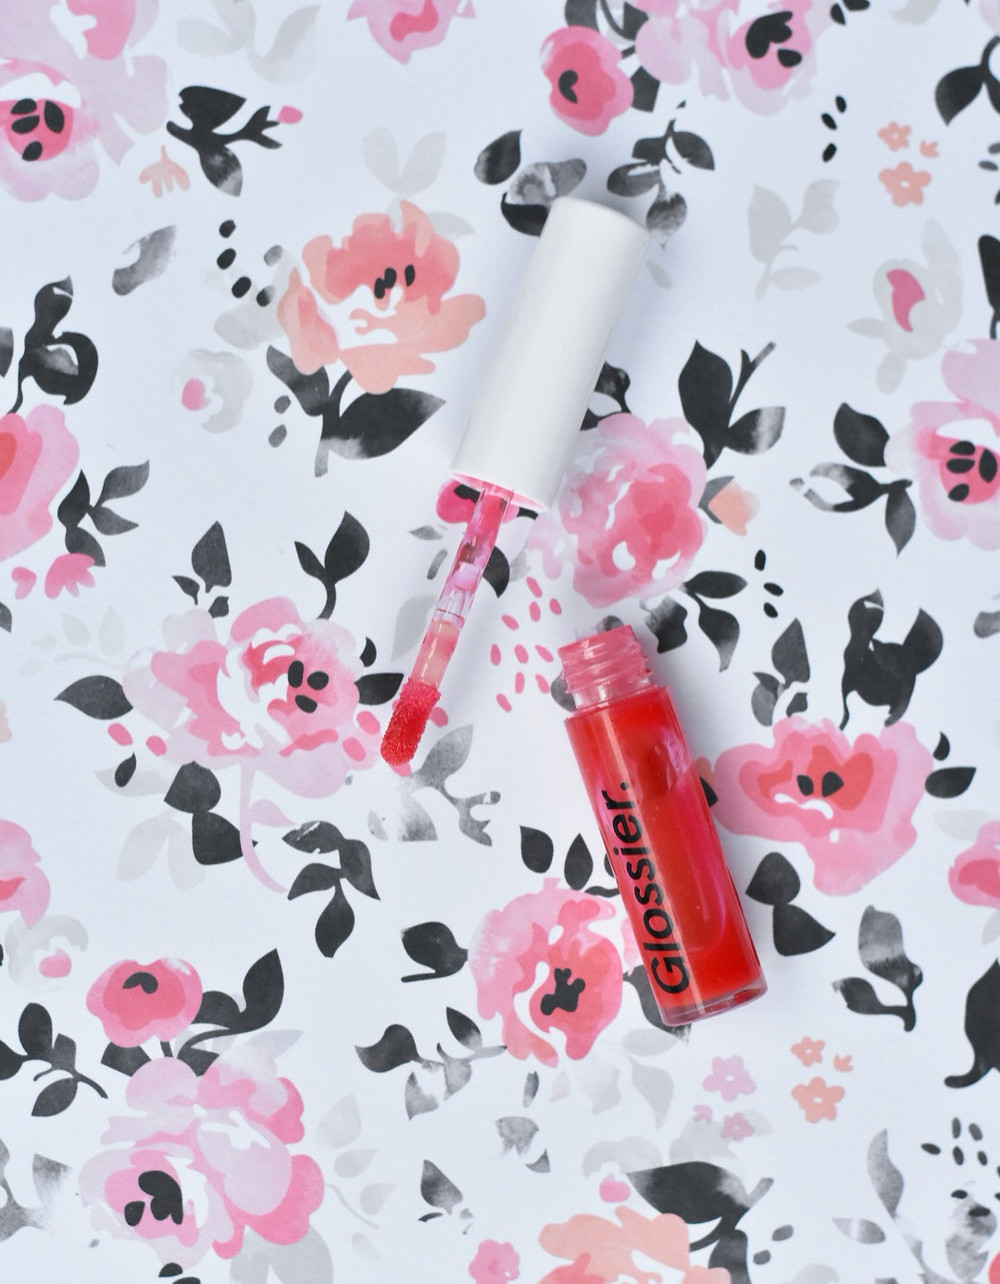 Glossier Lip Gloss in shade red